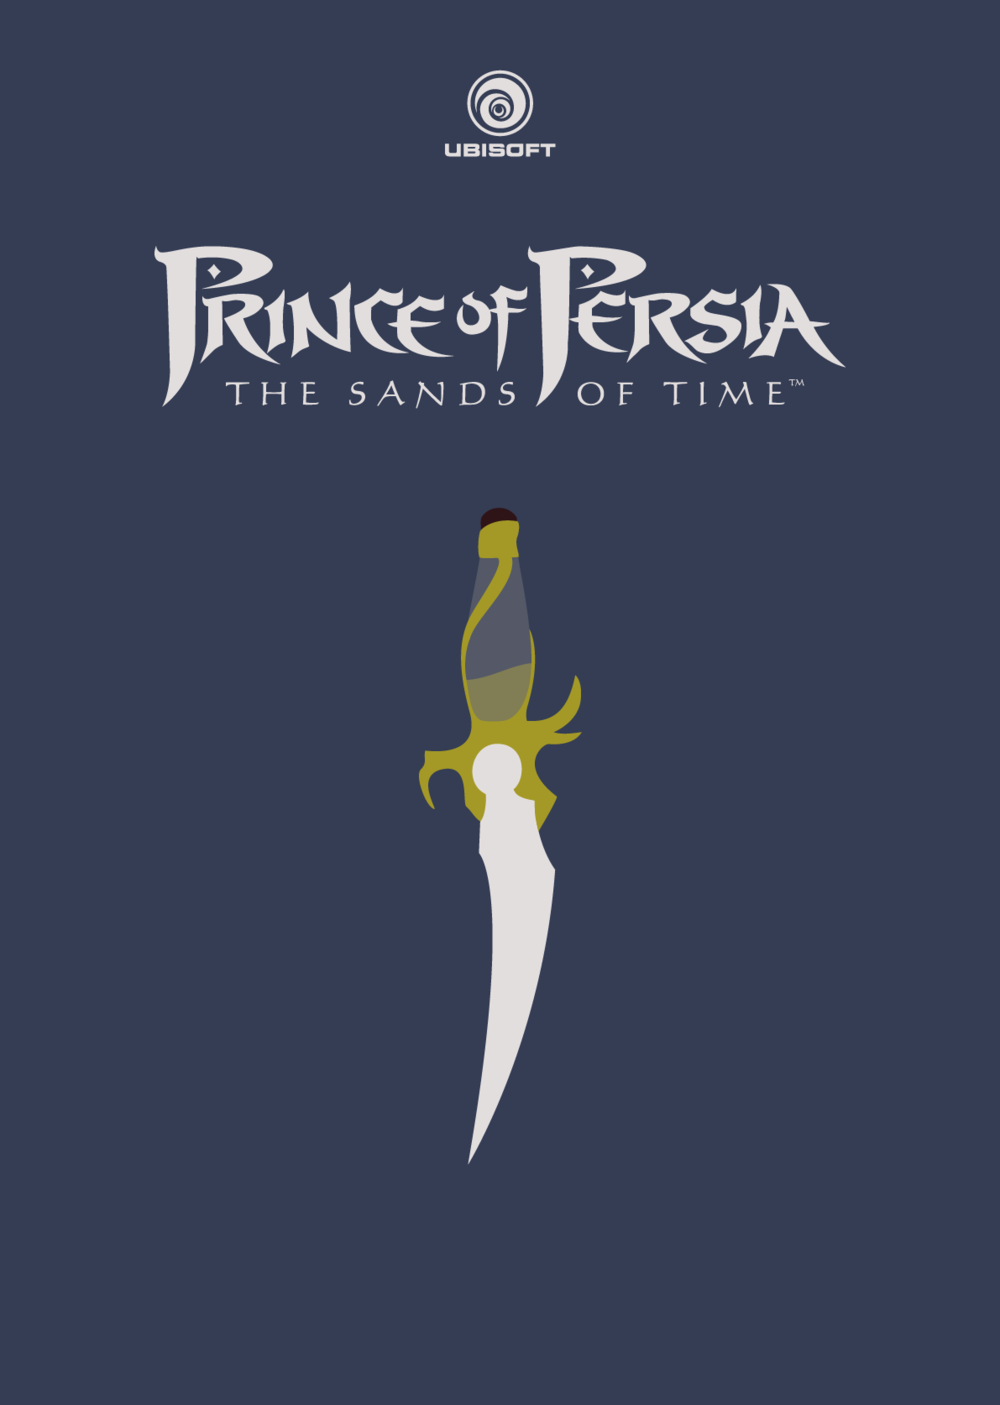 Maram Alesayi | Graphic and Motion Designer - Prince of Persia with Dagger of Time